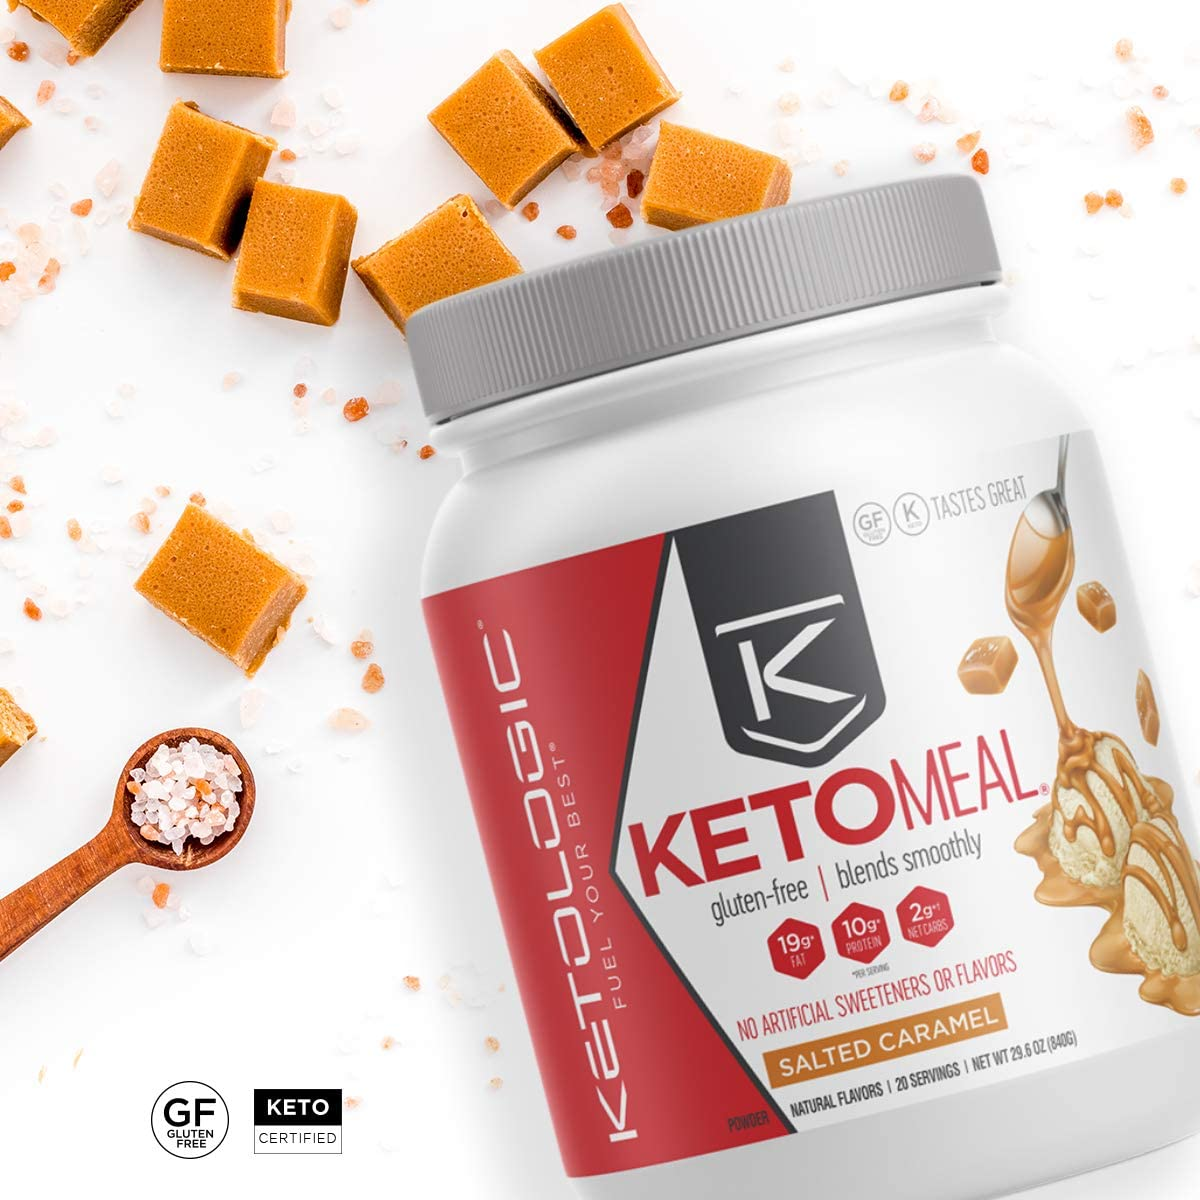 KetoLogic Keto Meal Replacement with MCT, Salted Caramel Low Carb, High Fat Keto Powder Promotes Weight Loss Suppresses Appetite 20 Servings